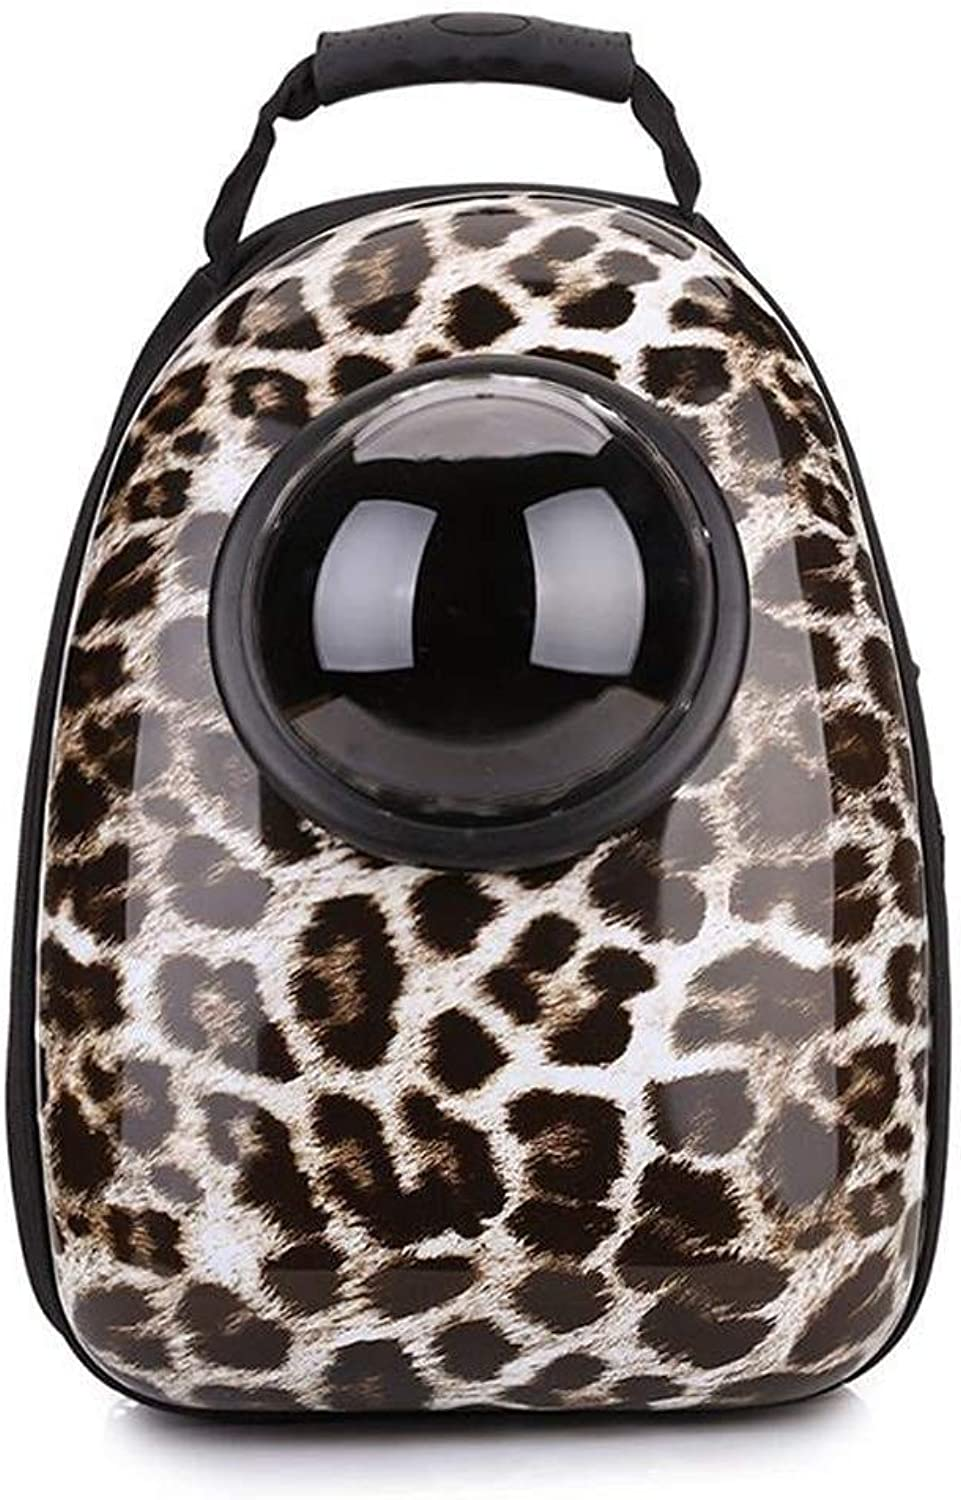 Pet Portable Carrier Leopard Shoulder Space Capsule Pet Cage, Suitable For Travel Hiking Camping Cats, Dogs And Other Pets